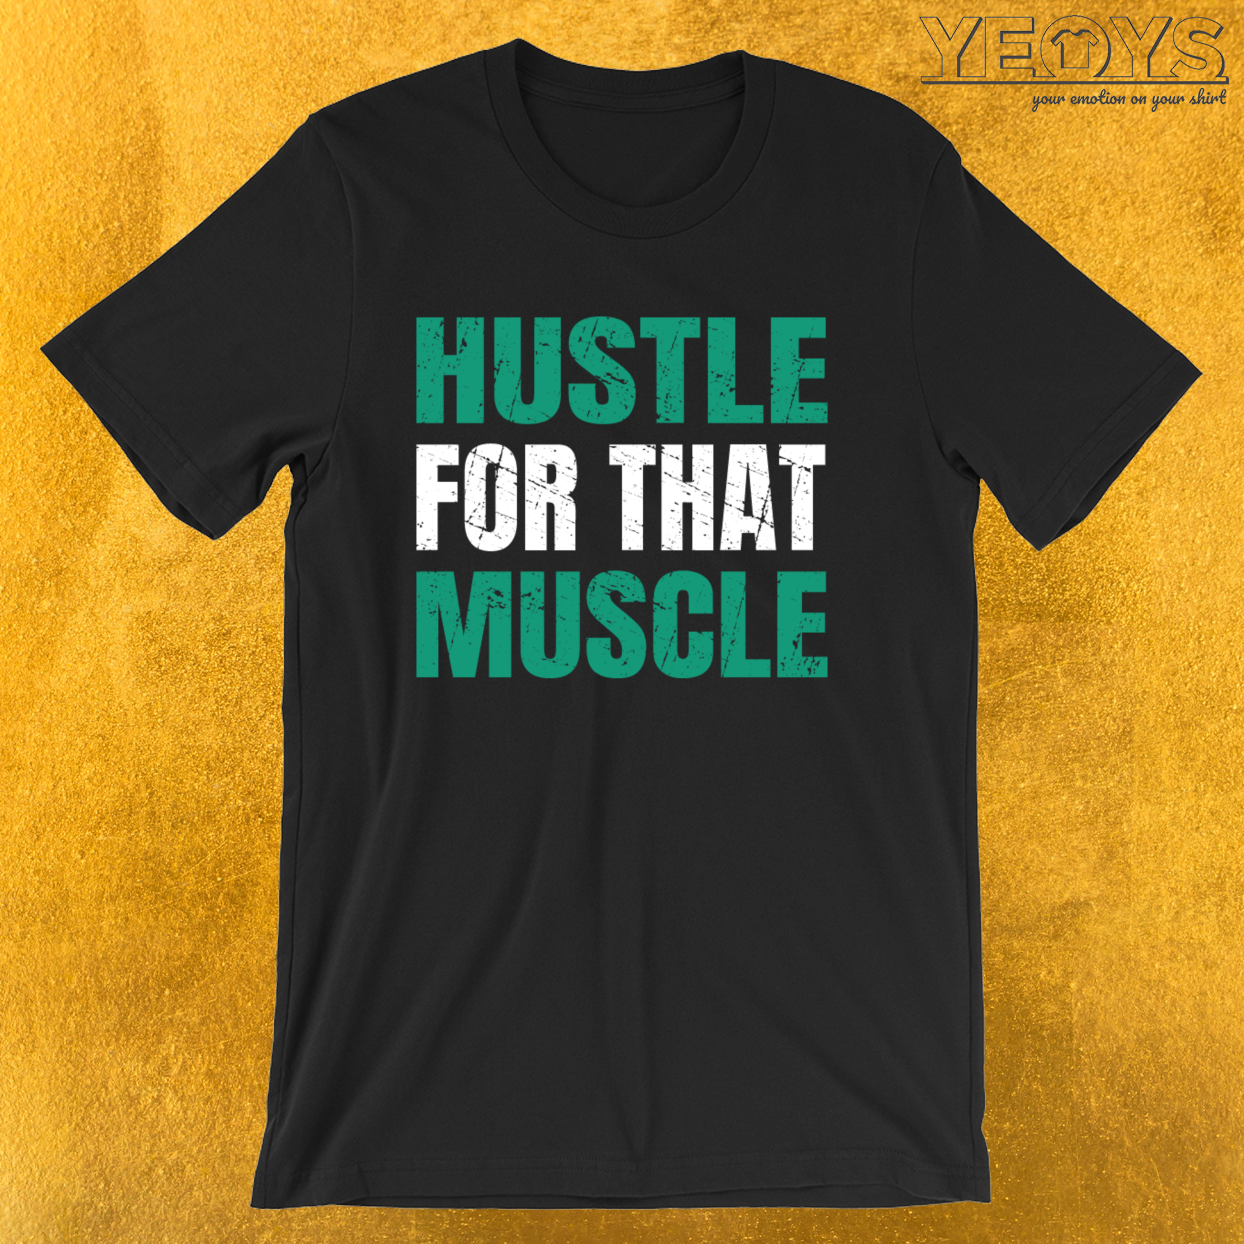 Hustle For That Muscle – Hustle Muscle Tee